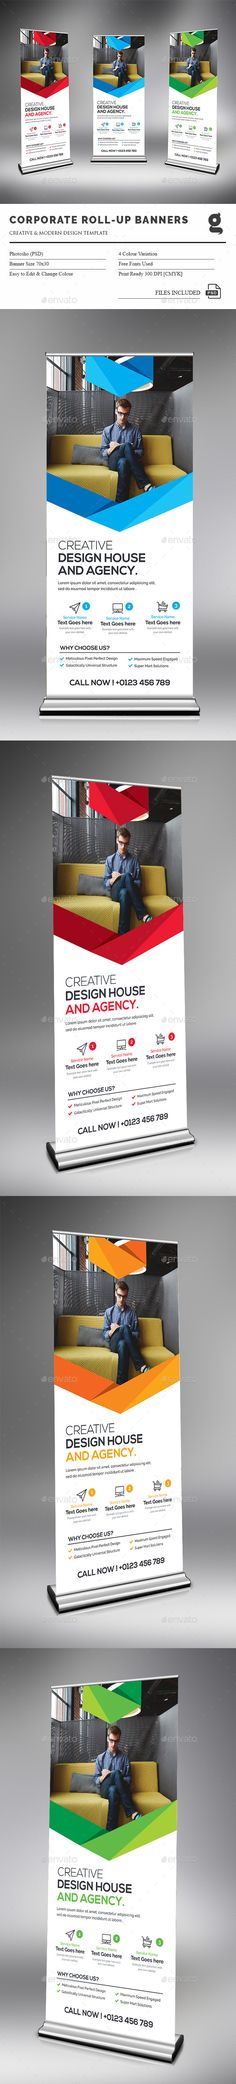 Corporate Rollup Banner Template PSD #design Download…